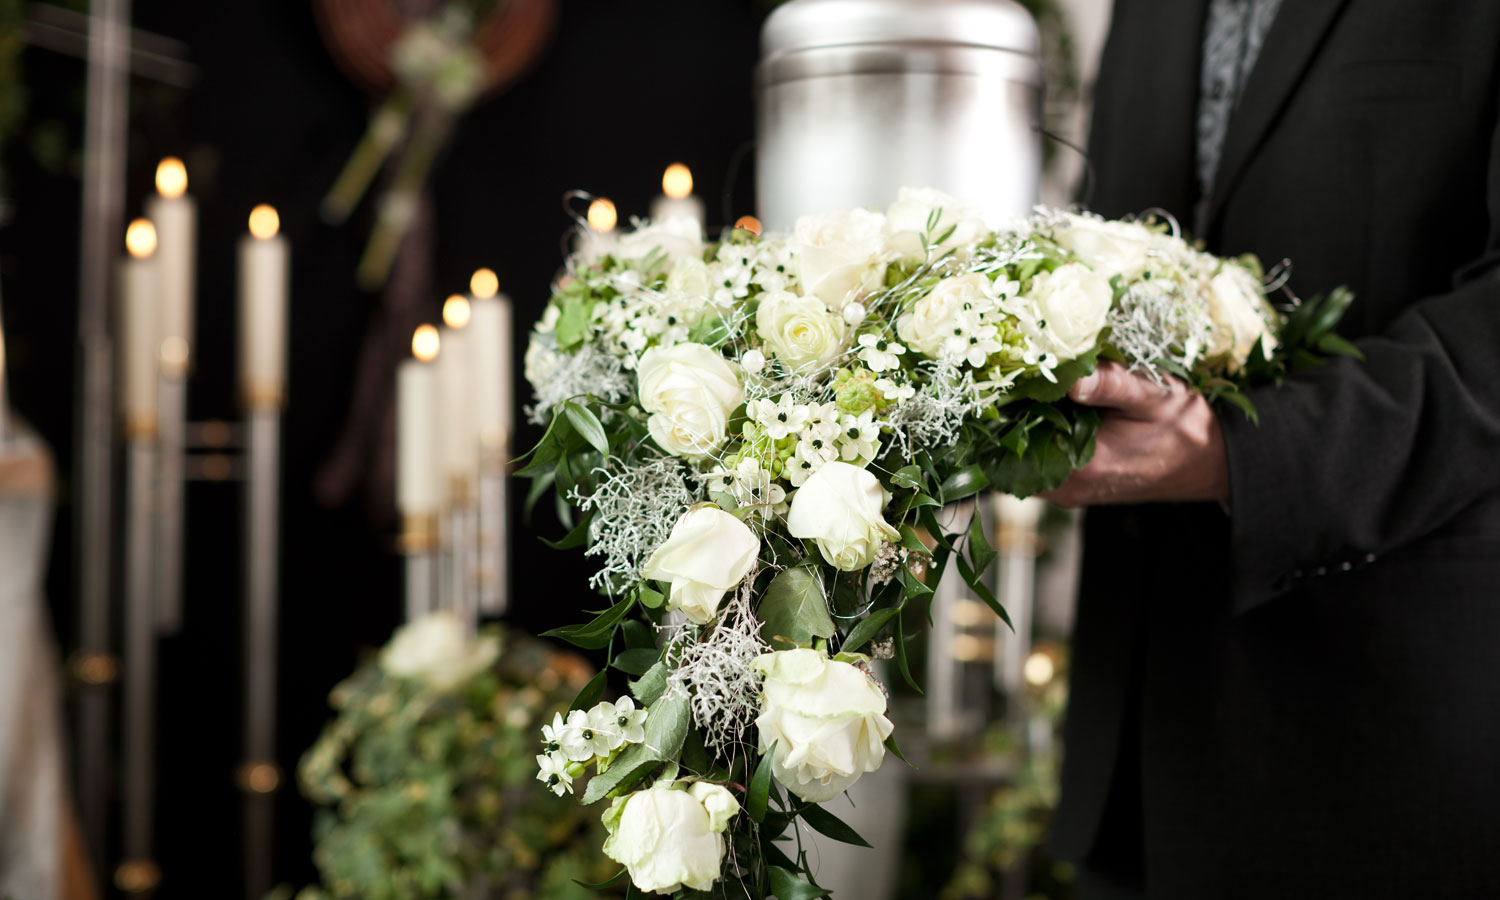 What You Might Not Be Aware Of When Planning A Funeral